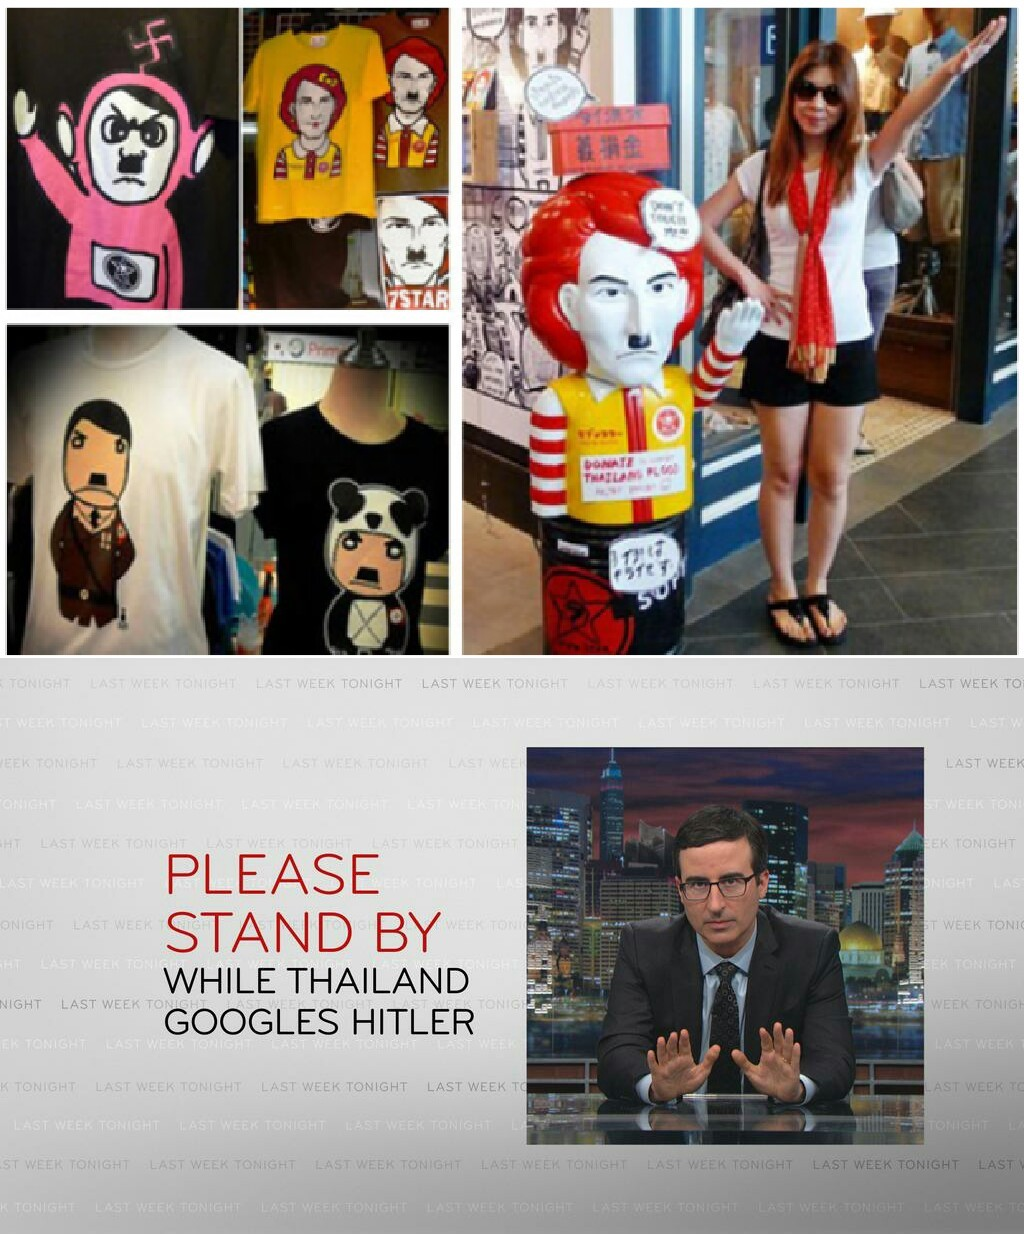 Thailand should really google Hitler - meme